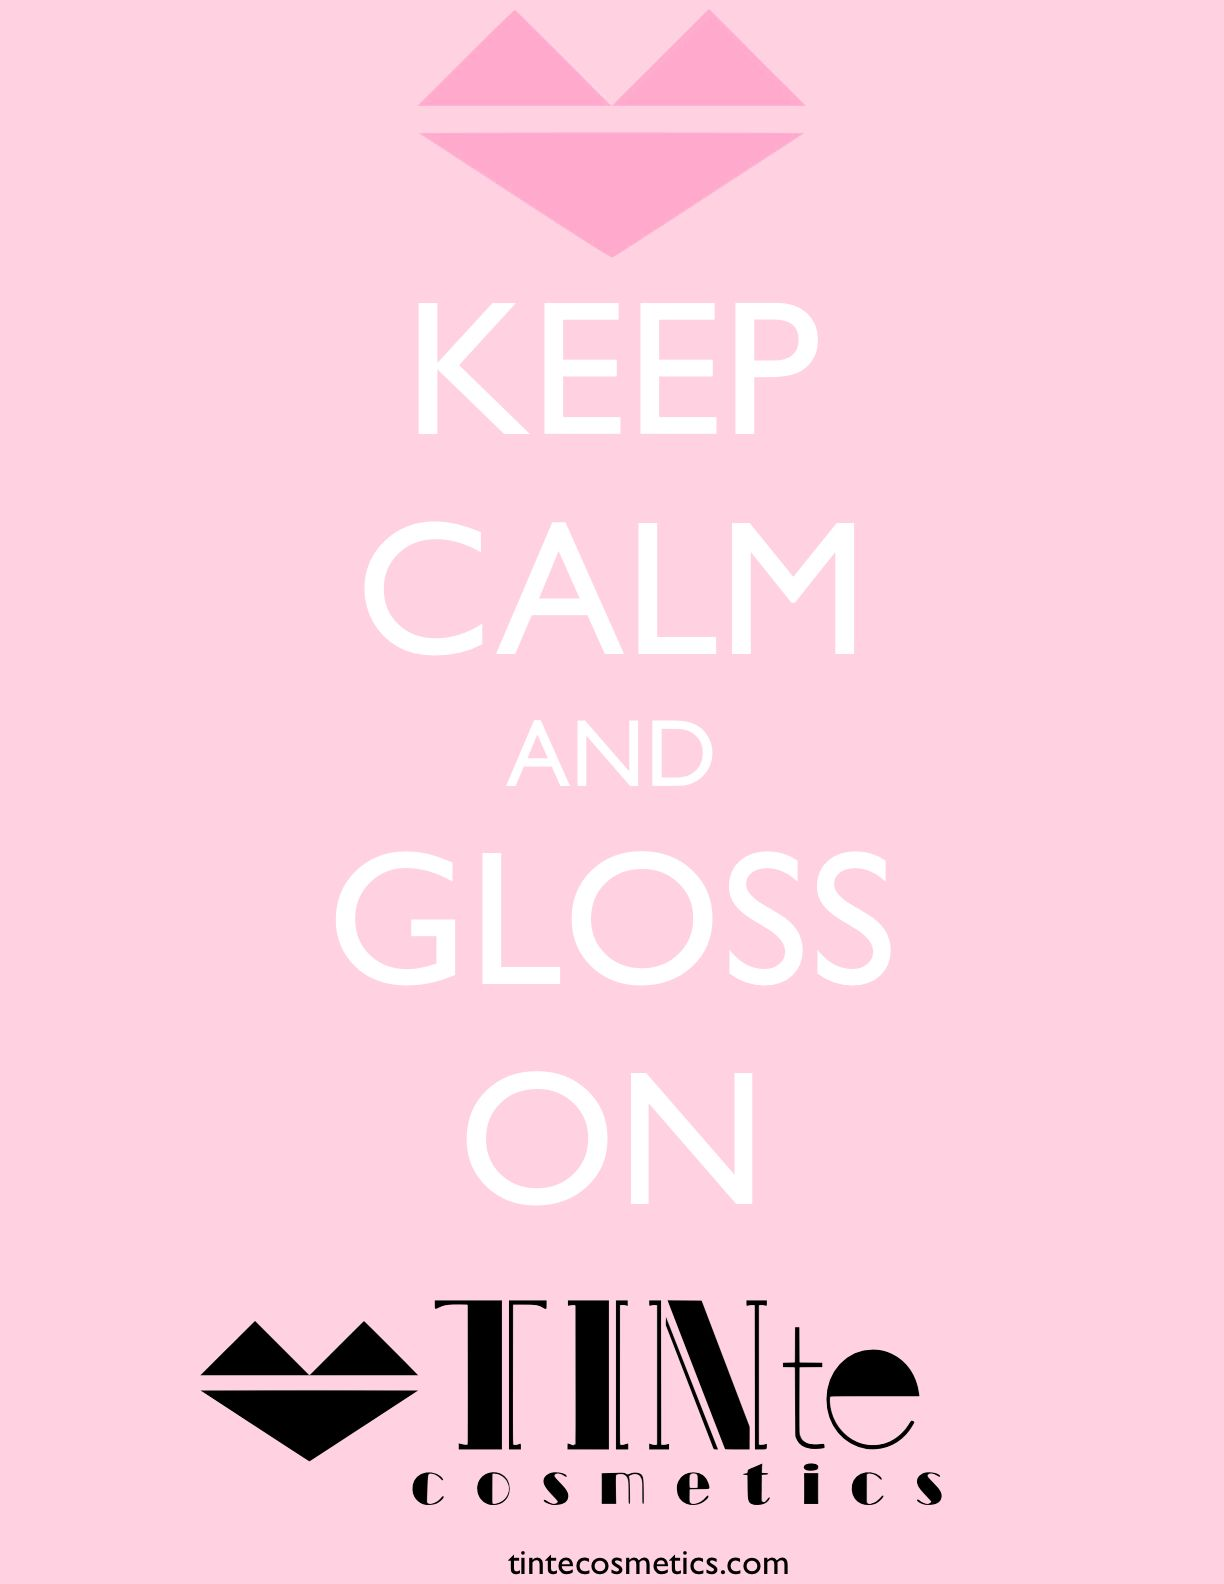 Keep Calm & Gloss on with our #flavoredlipgloss #vintageslidertins #vintagelipbalm www.tintecosmetics.com